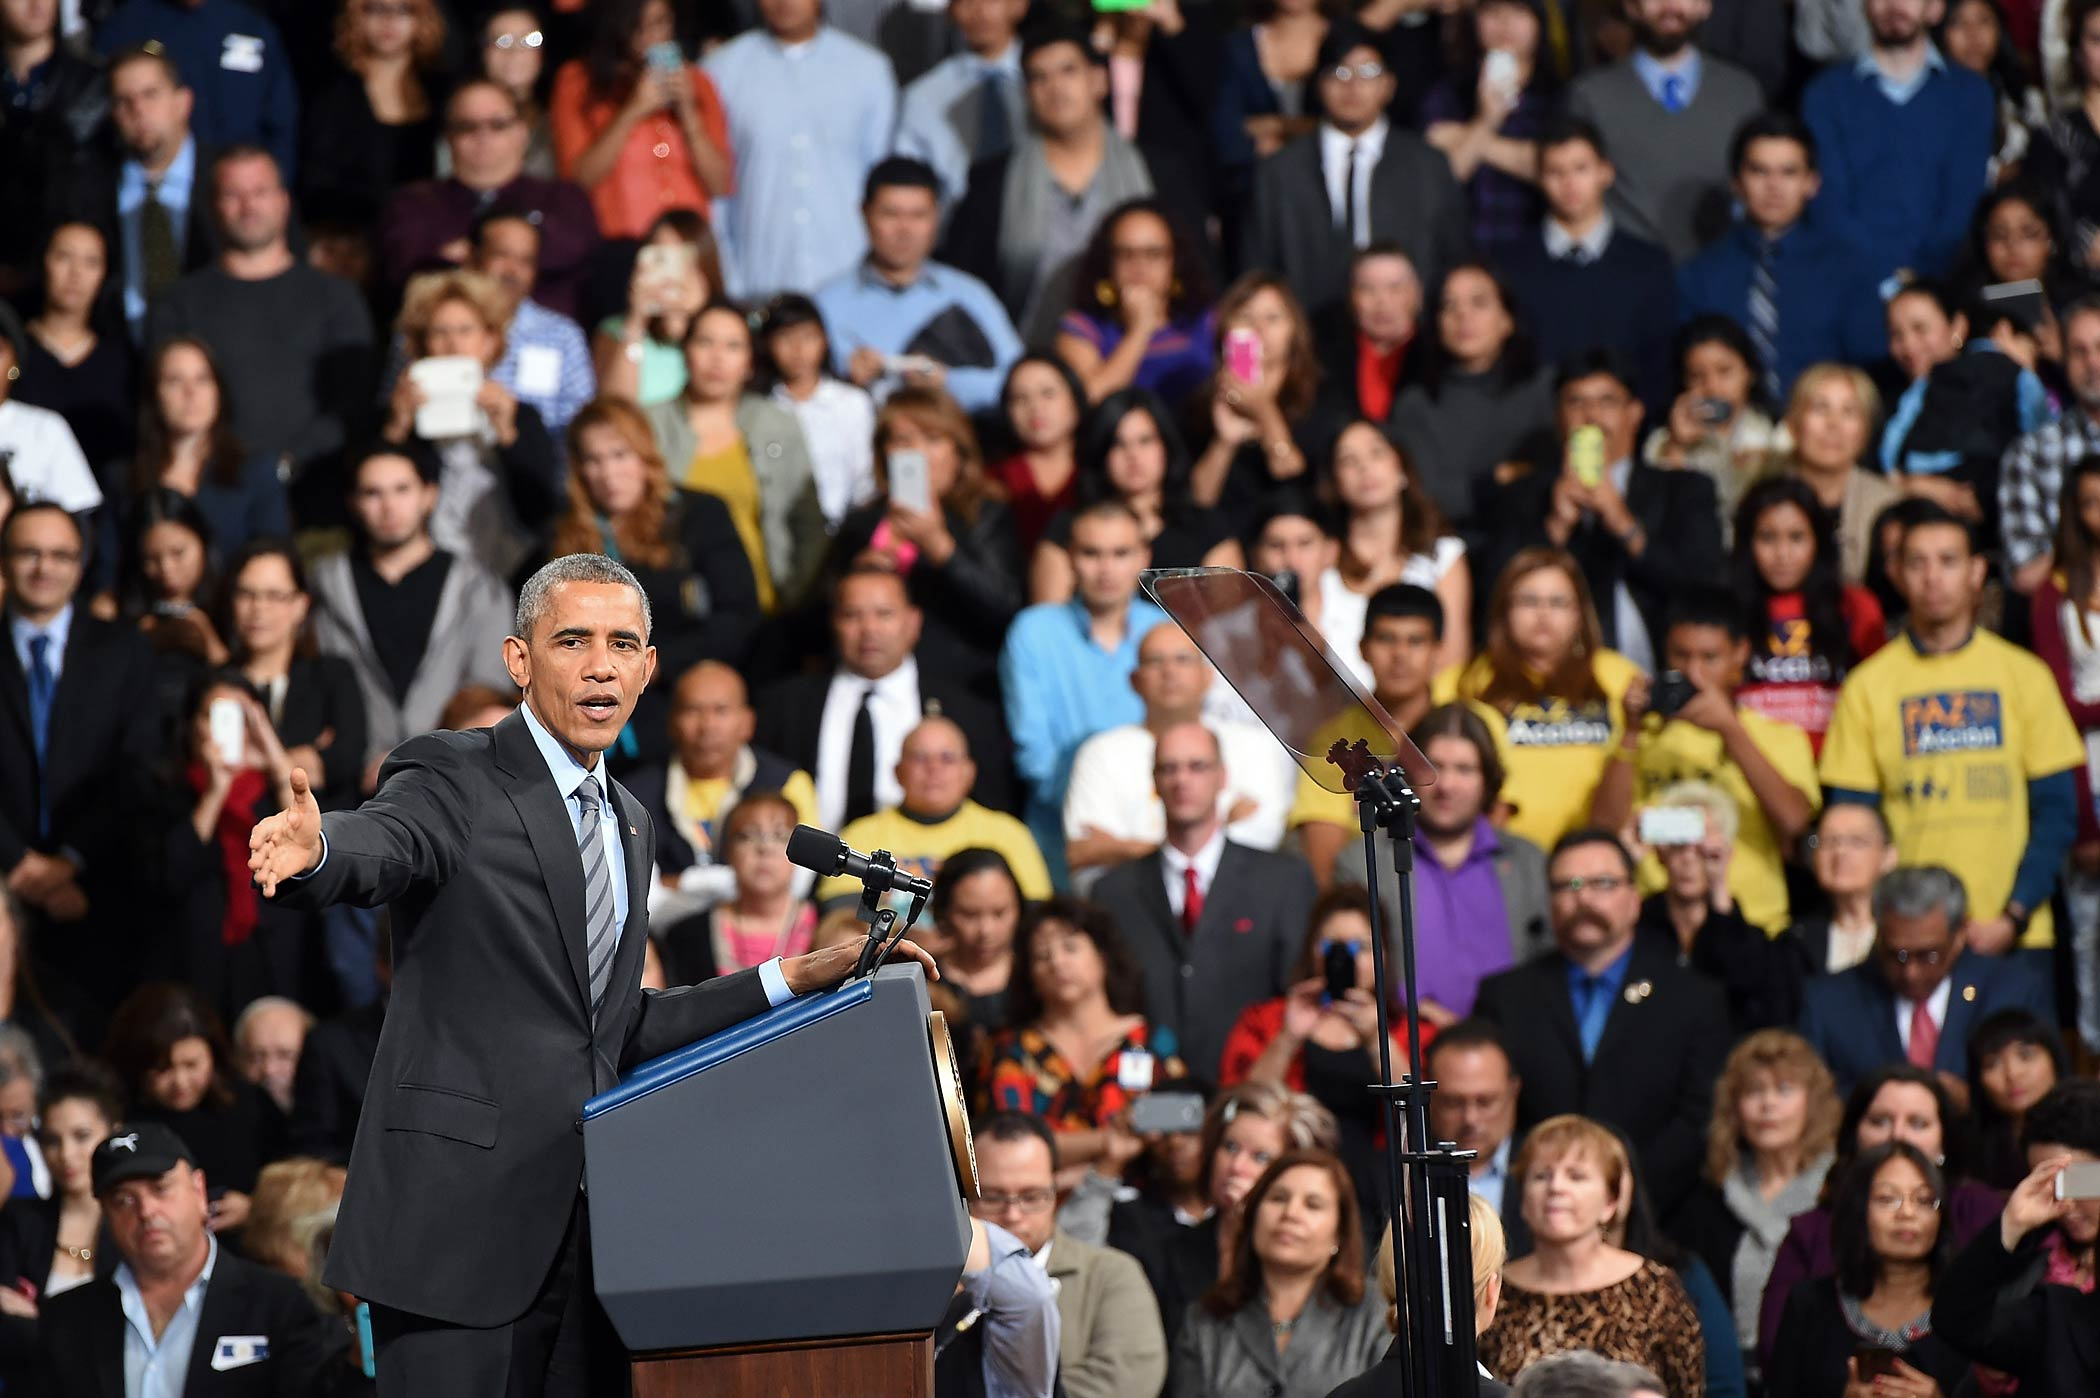 President Barack Obama speaks about his executive action on U.S. immigration policy at Del Sol High School on Nov. 21, 2014 in Las Vegas, Nev.